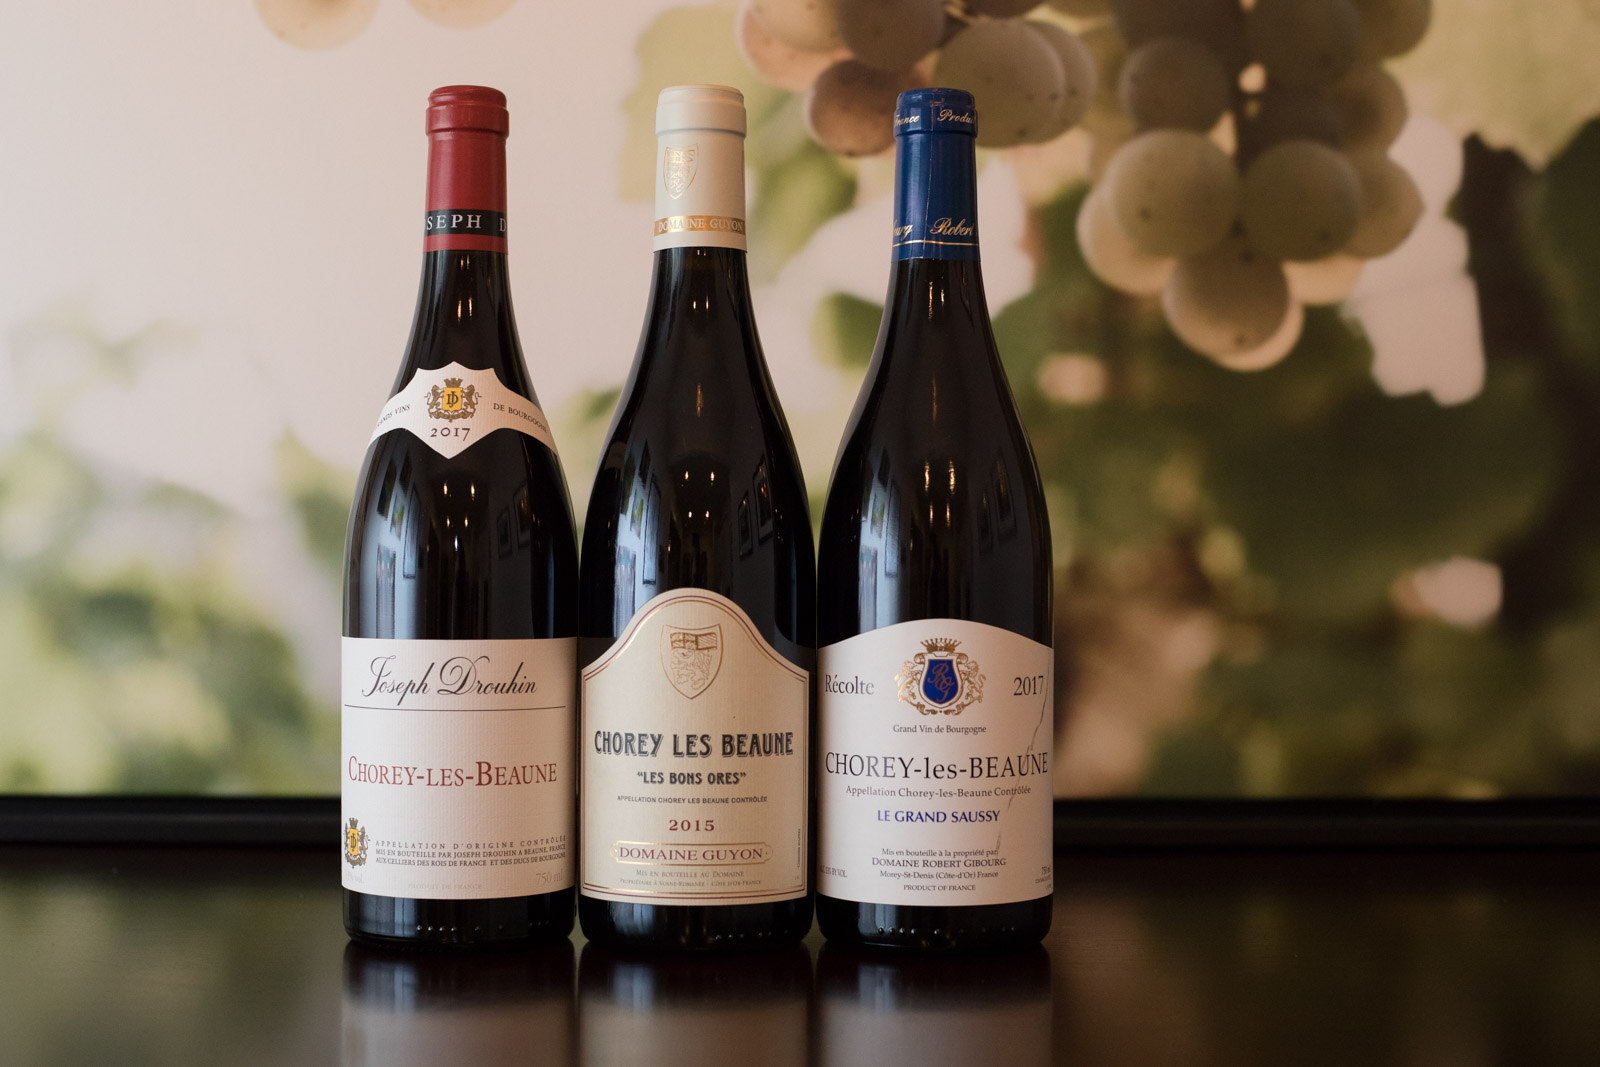 Three wines from Chorey-les-Beaune. ©Kevin Day/Opening a Bottle